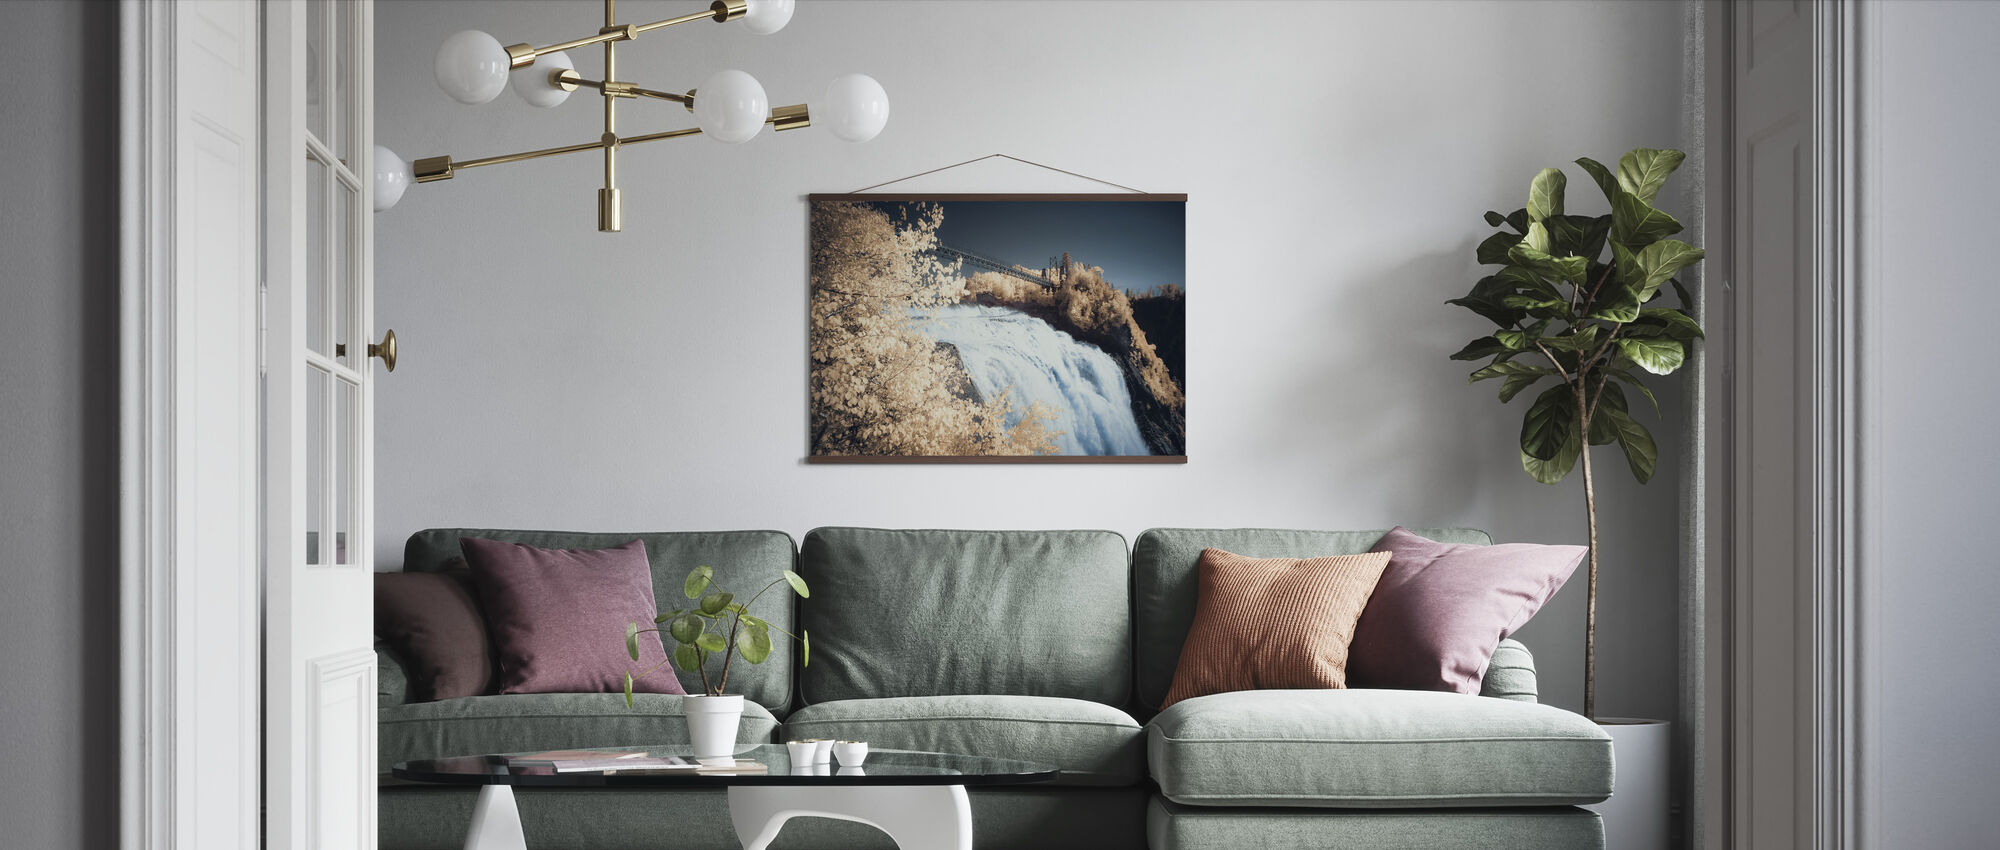 Passage High above the Clouds - Poster - Living Room